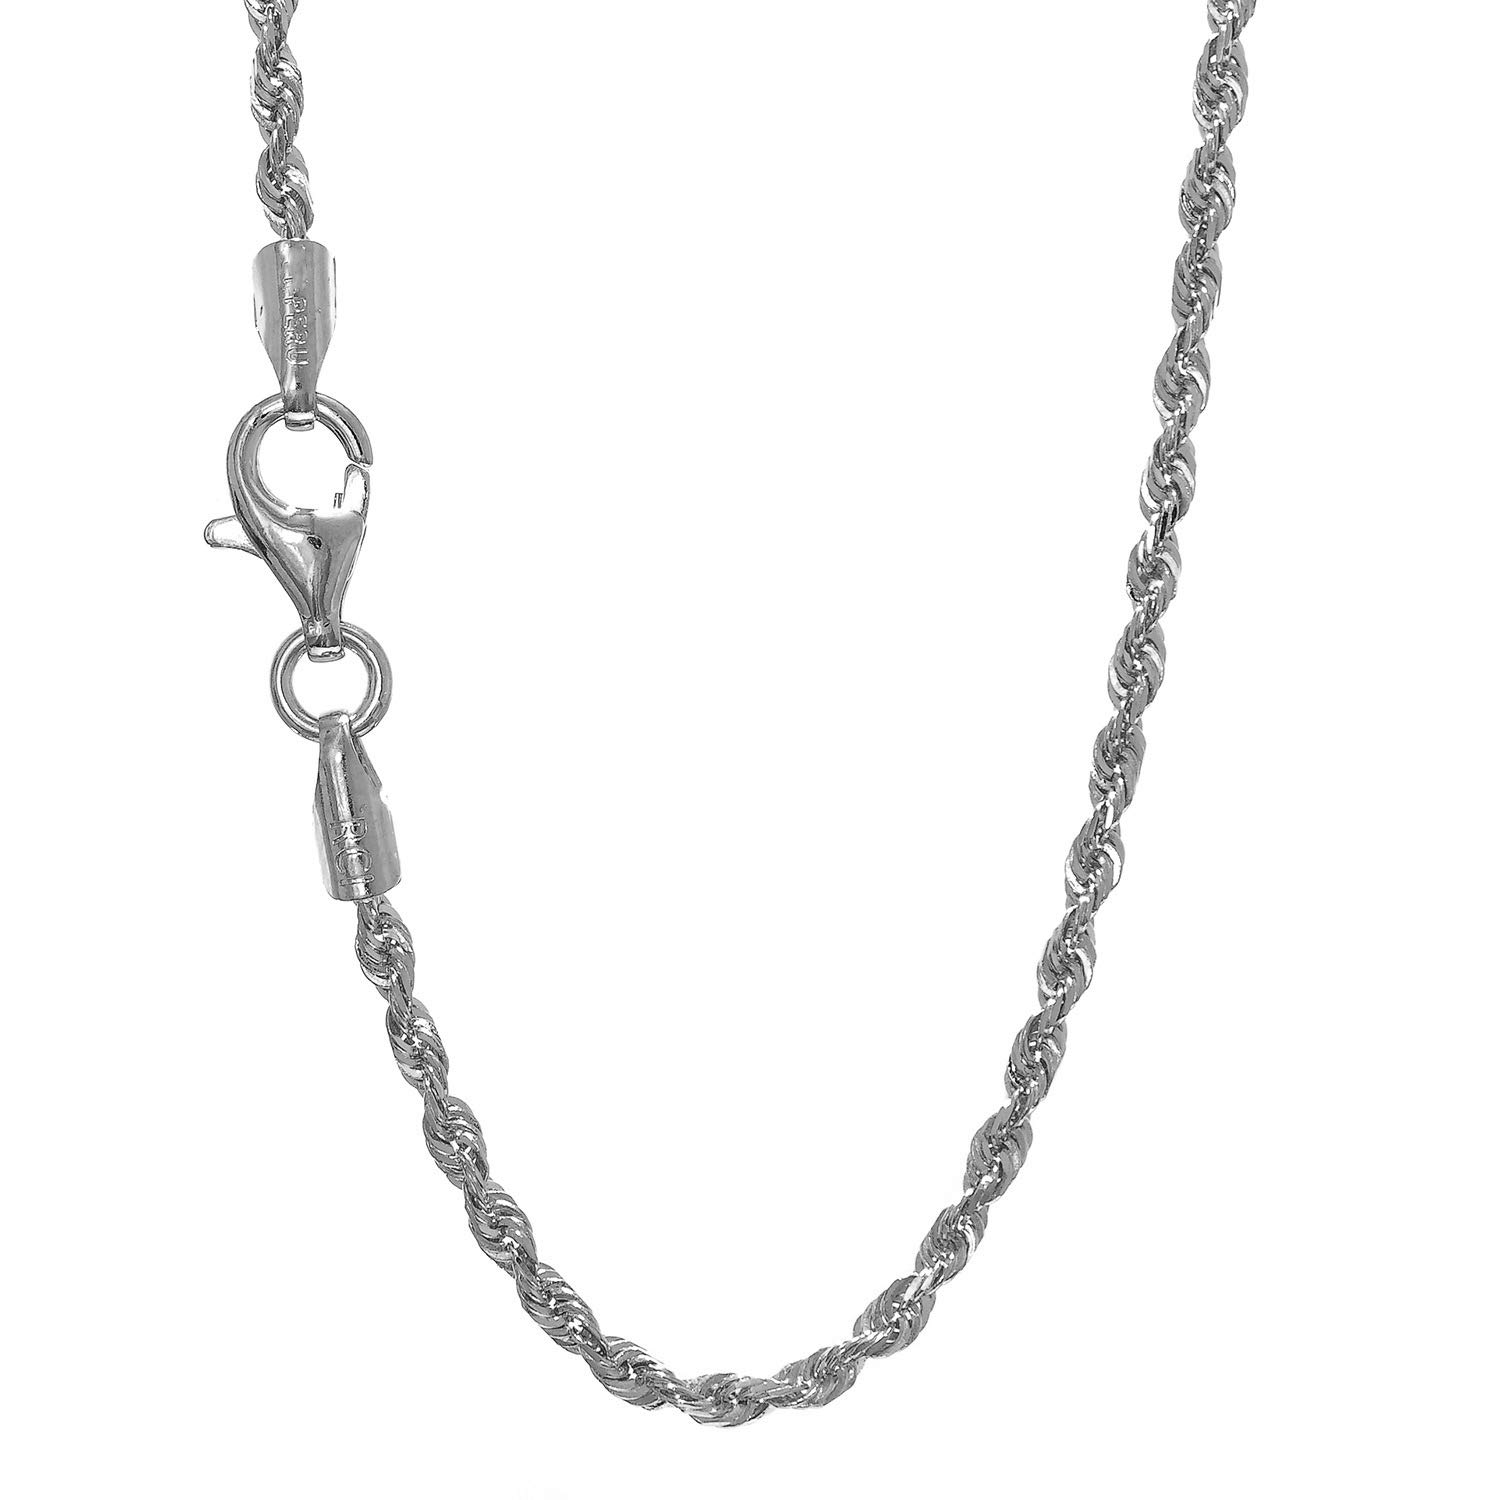 JewelStop 14k Solid White Gold 1.5 mm Rope Chain Necklace, Lobster Claw Clasp - 20'', 3.8gr.